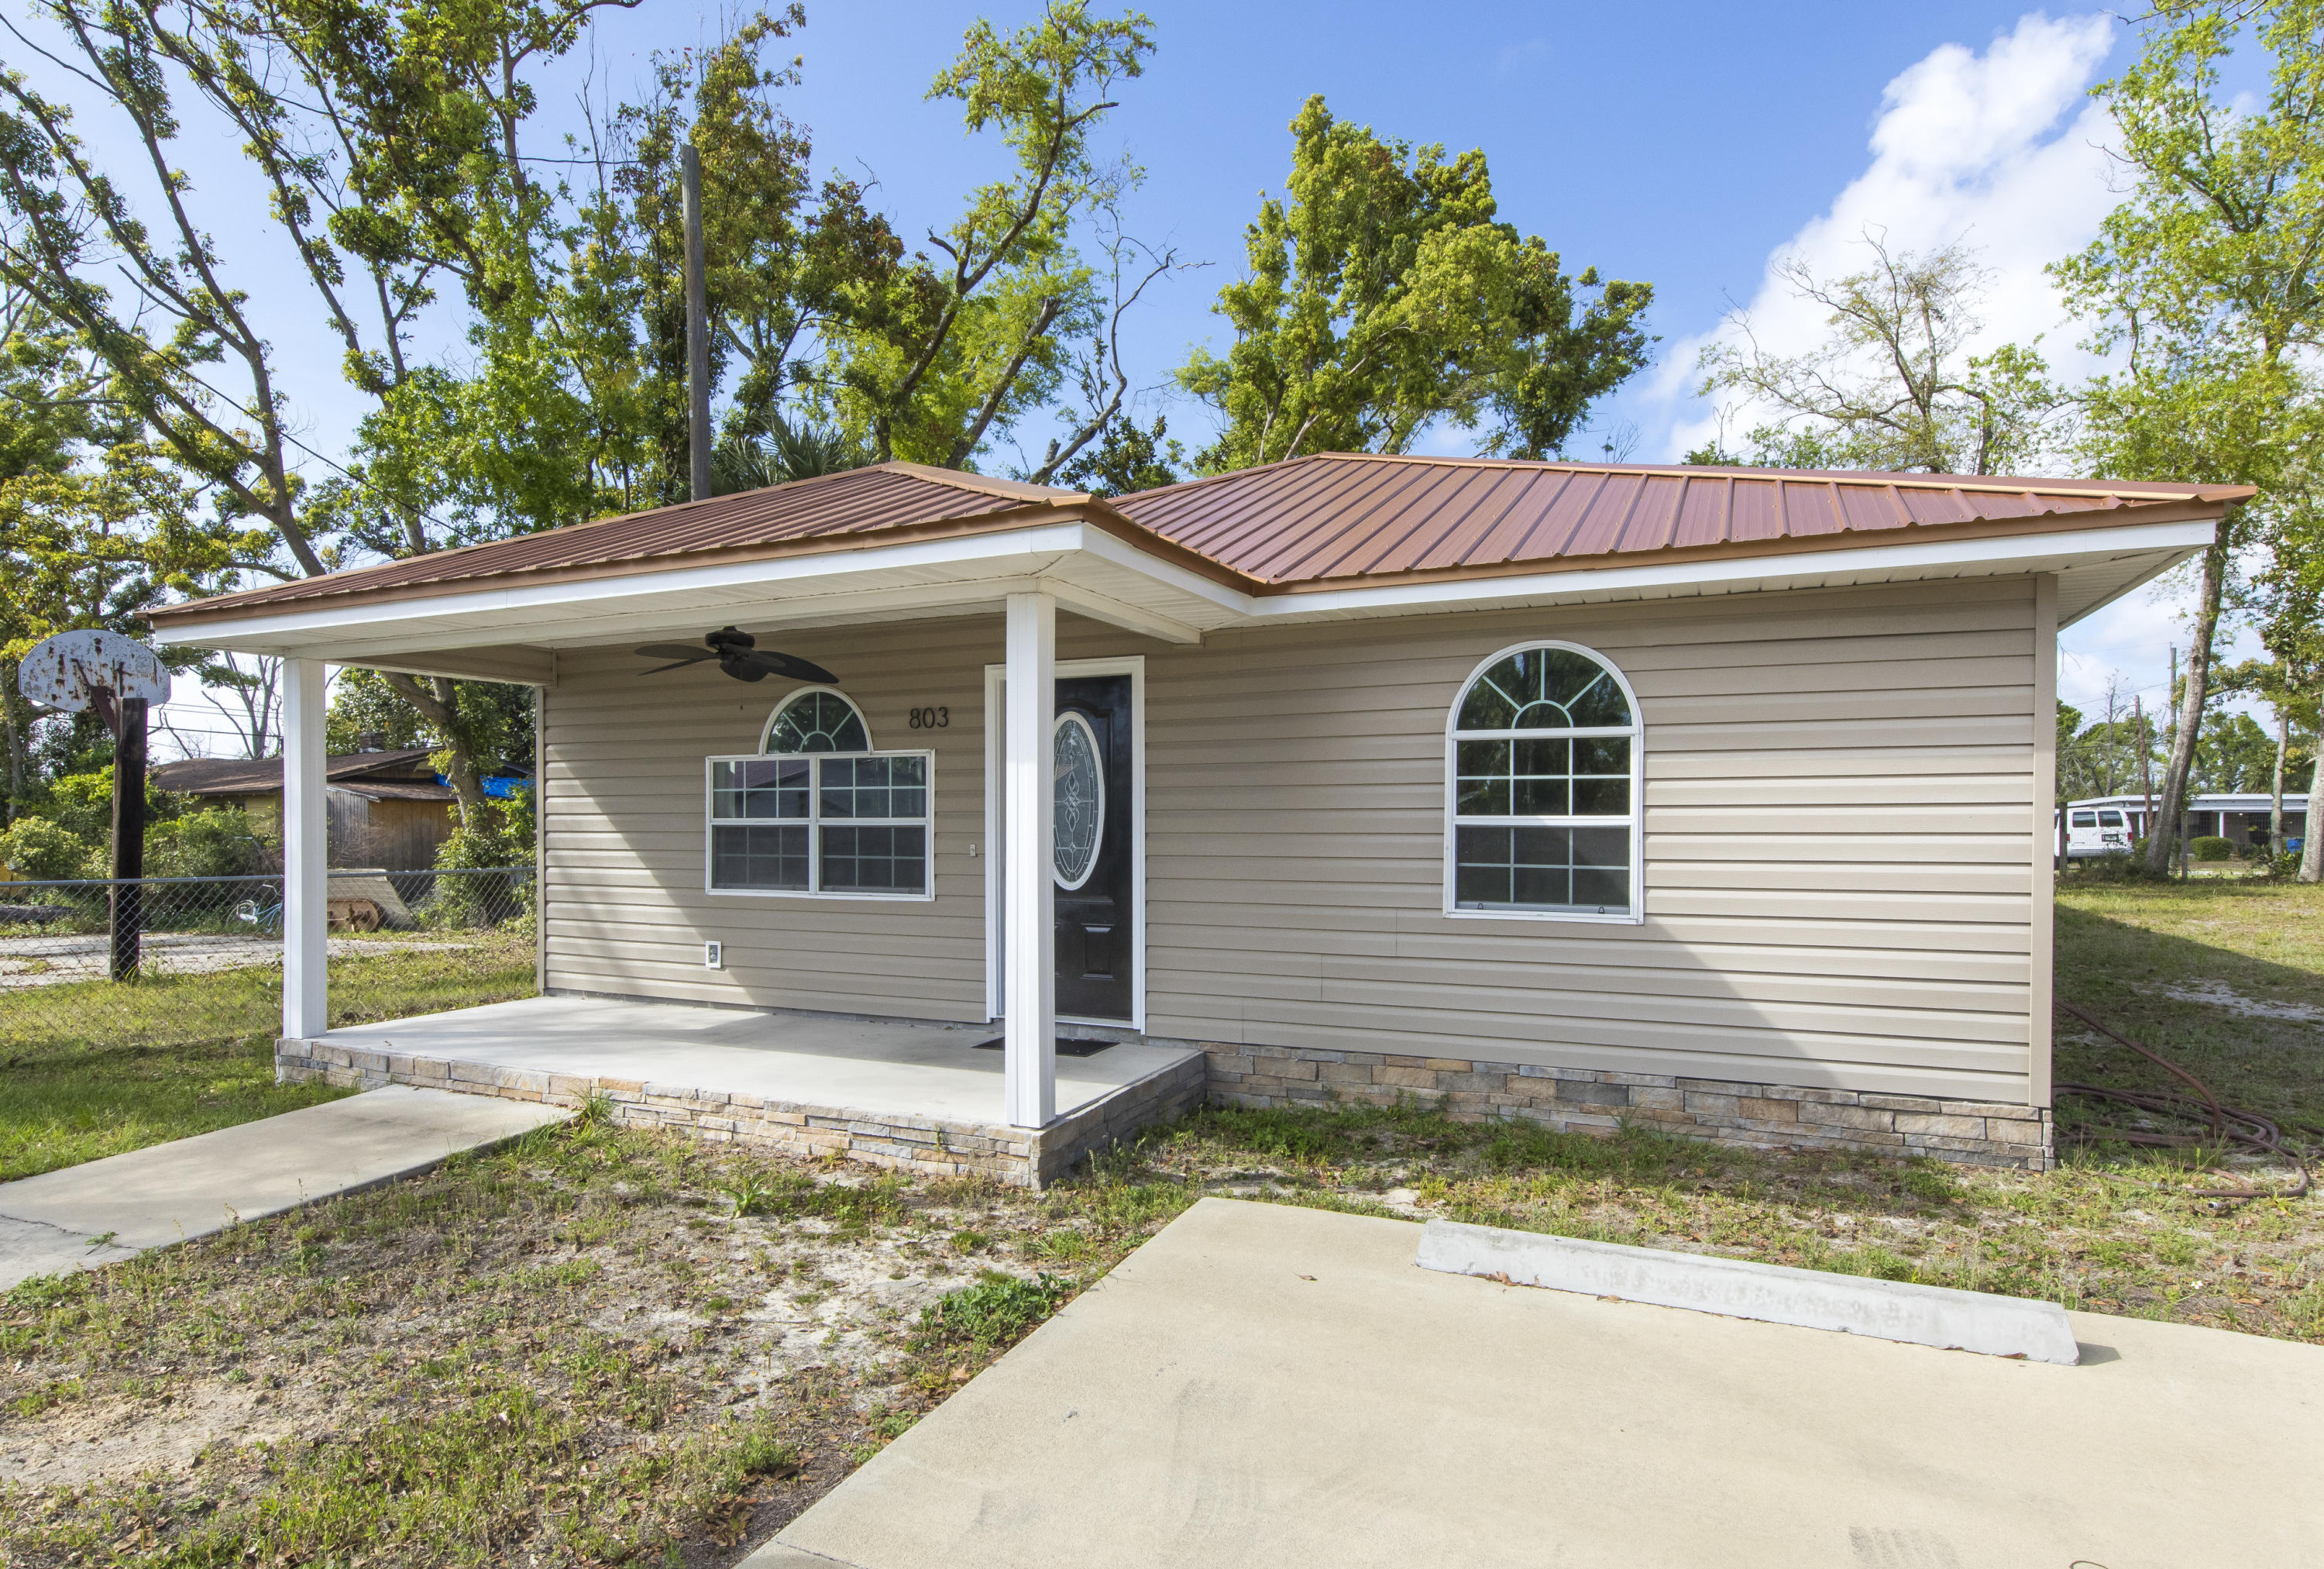 Photo of home for sale at 803 12Th, Panama City FL